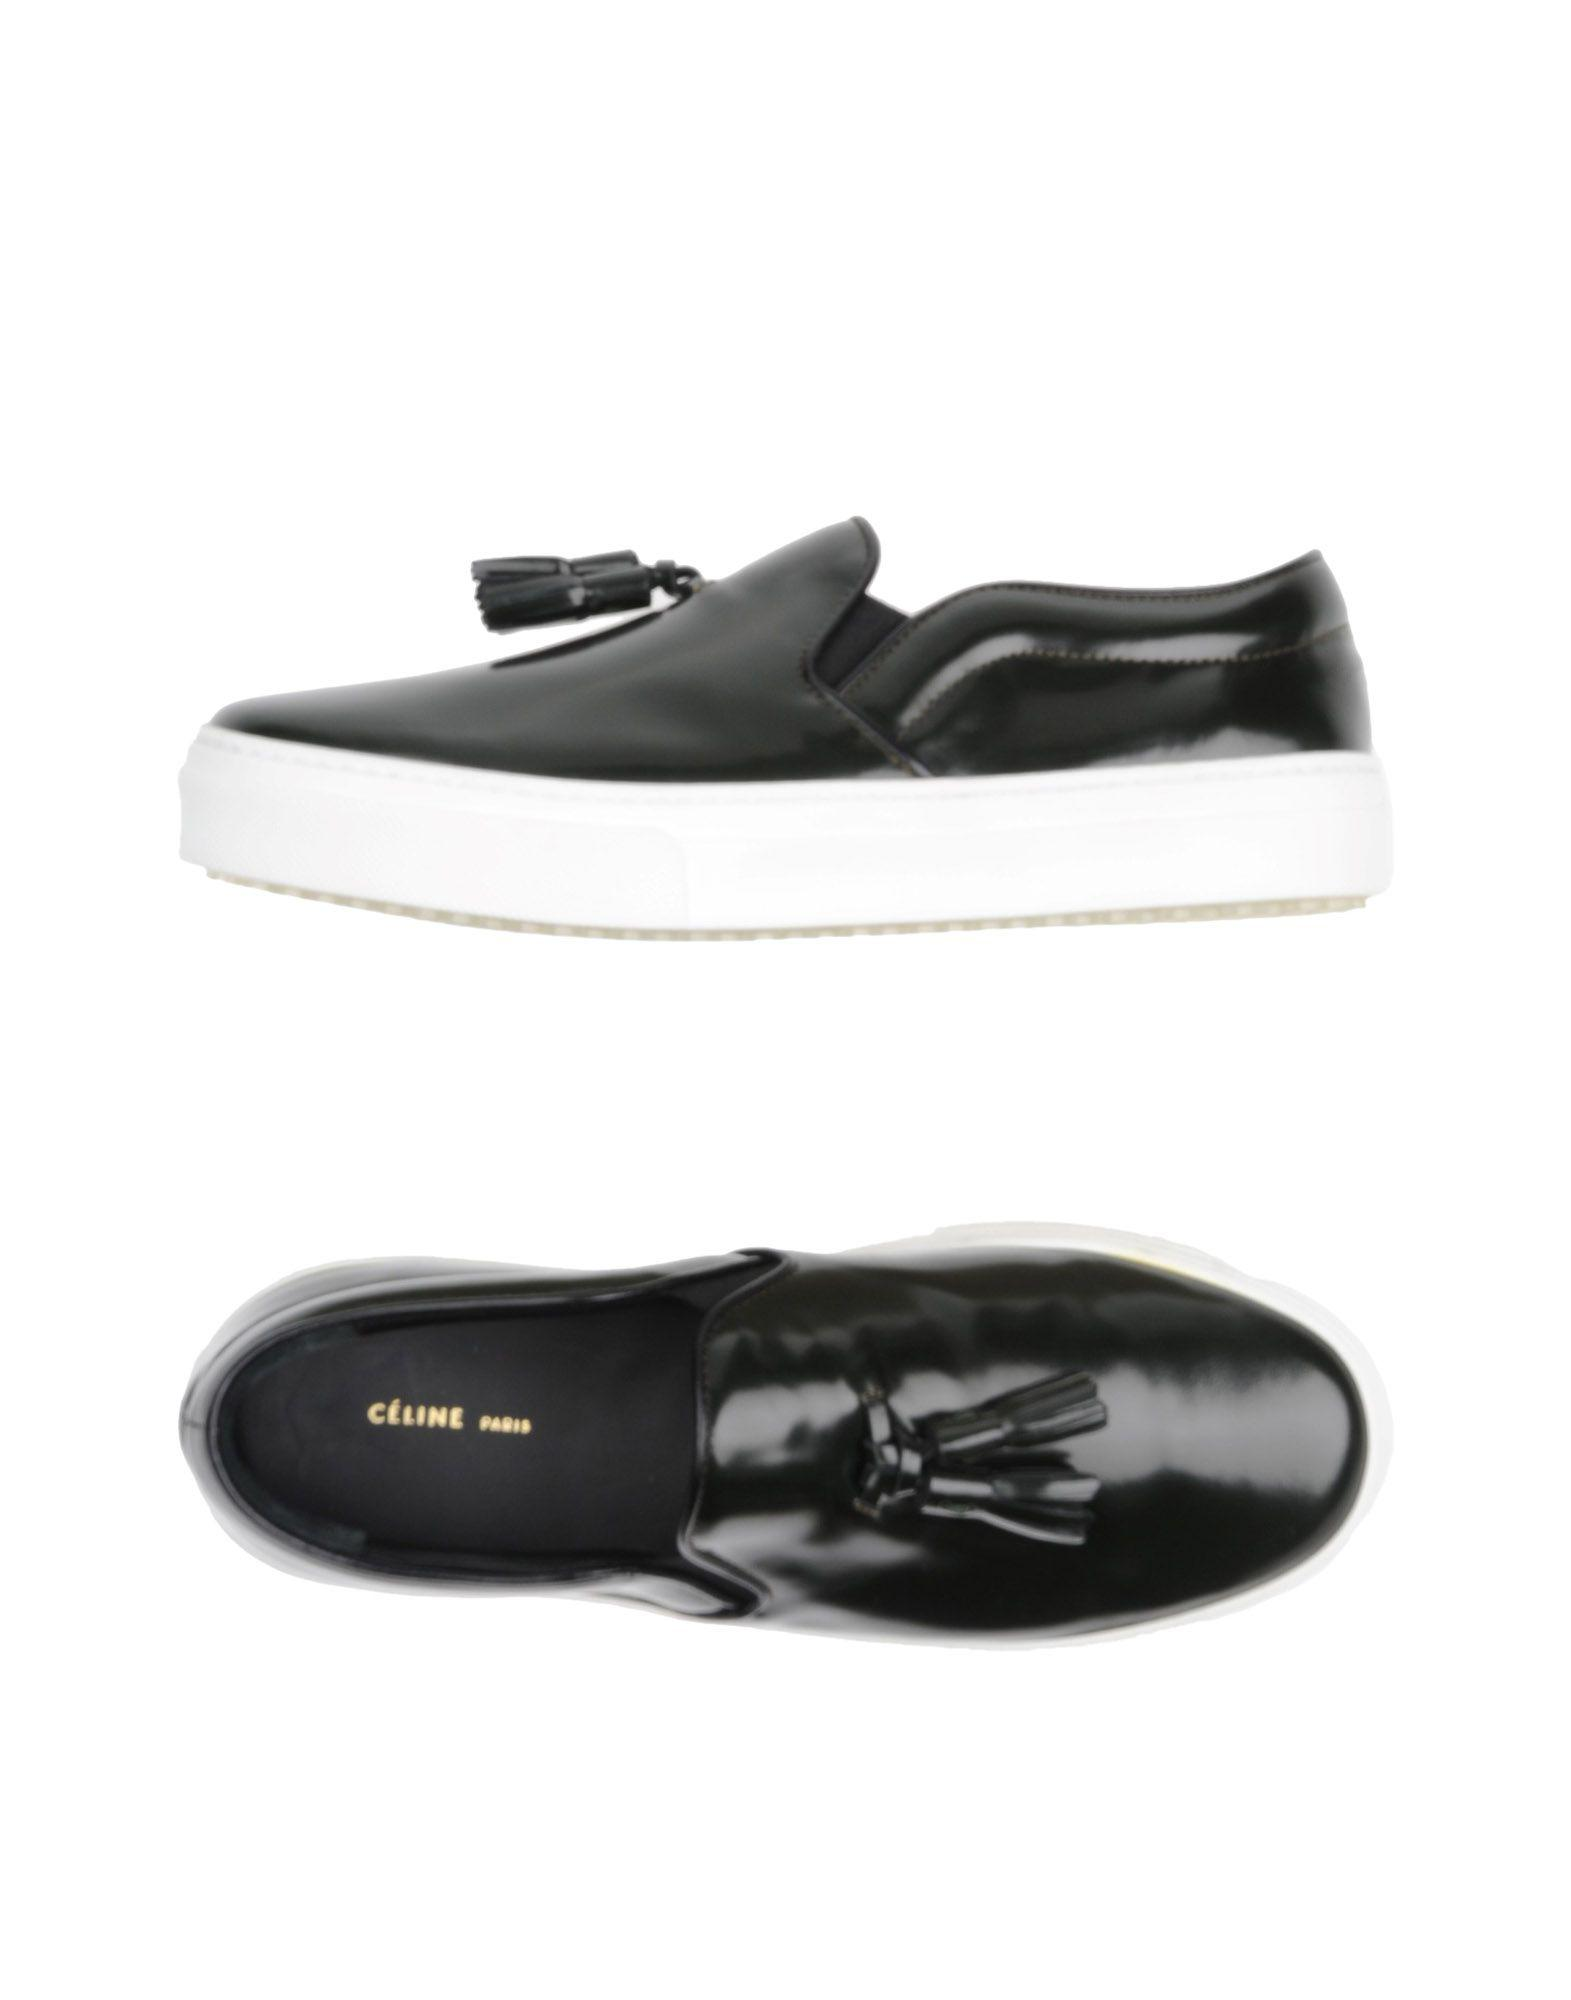 FOOTWEAR - Low-tops & sneakers on YOOX.COM Celine 44SsYky46C